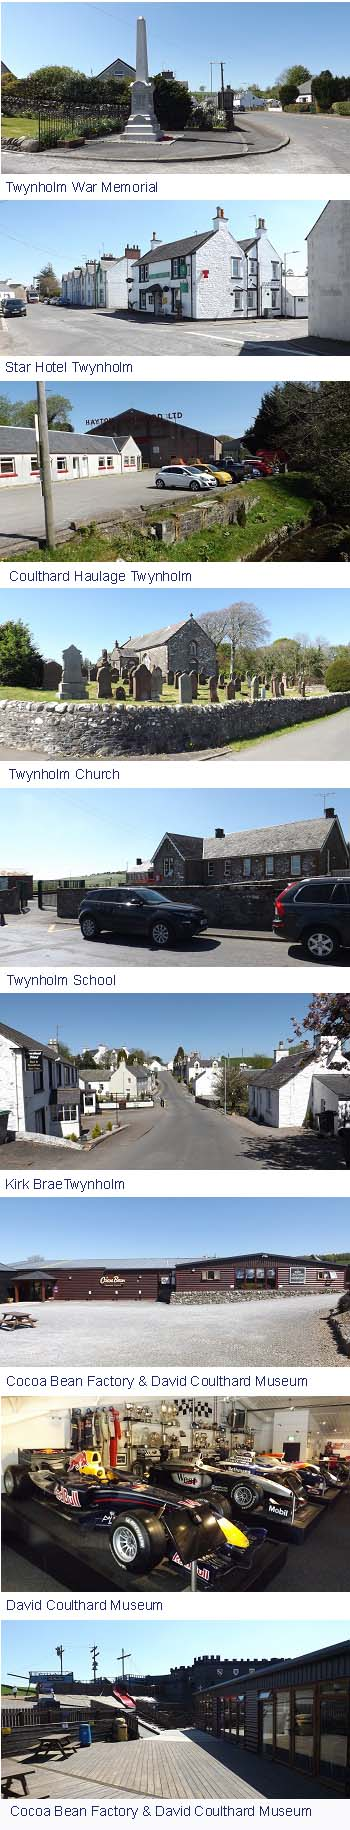 Twynholm Images